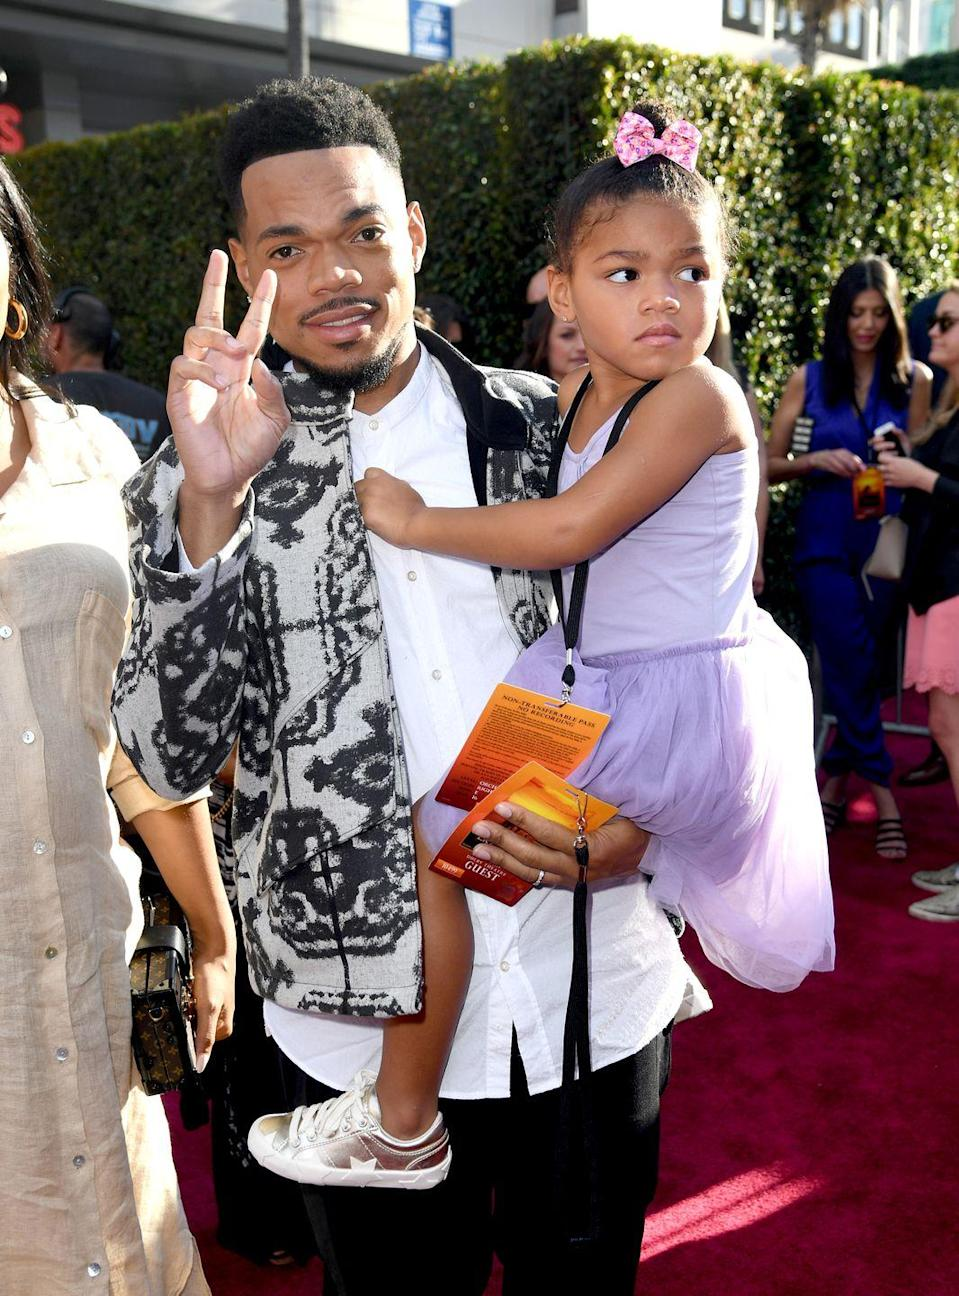 """<p><strong>Children</strong>: Kensli Bennett (4) and Marli Grace Bennett (10 months)</p><p>The rapper and activist has two adorable daughters with his wife Kirsten Corley. Ever the doting dad, he's taken his kids <a href=""""https://www.instagram.com/p/BOs3-bnBM9n/?utm_source=ig_embed"""" rel=""""nofollow noopener"""" target=""""_blank"""" data-ylk=""""slk:to meet the Obamas"""" class=""""link rapid-noclick-resp"""">to meet the Obamas</a> and even <a href=""""https://www.instagram.com/p/Bzva9cEgS29/"""" rel=""""nofollow noopener"""" target=""""_blank"""" data-ylk=""""slk:pose backstage with Beyoncé"""" class=""""link rapid-noclick-resp"""">pose backstage with Beyoncé</a>.</p>"""